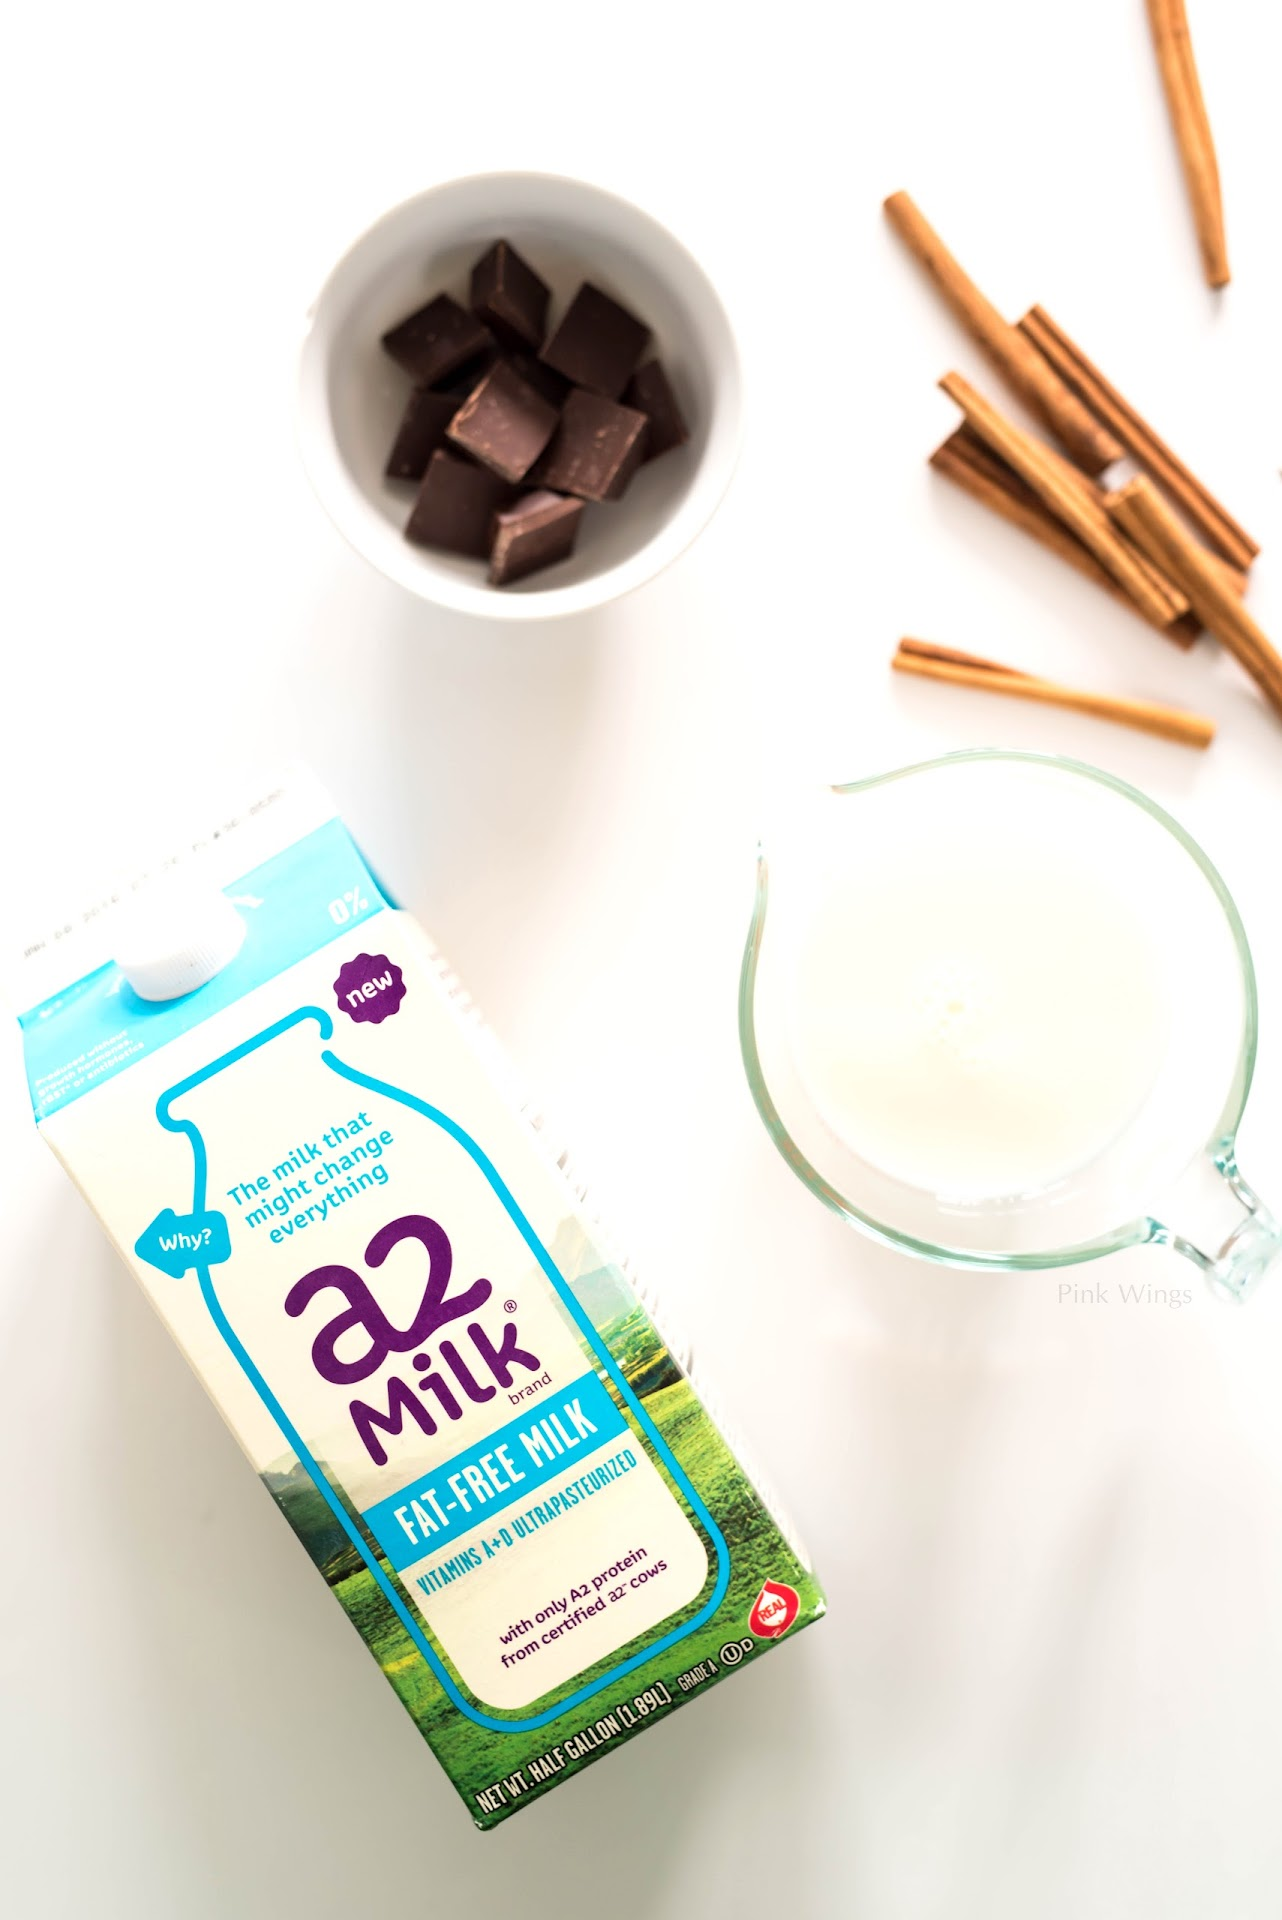 a2 milk review, dairy-free recipes, milk for people with pd3, post-dairy digestive disorder, lactose intolerant, milk without a1 protein, european hot chocolate